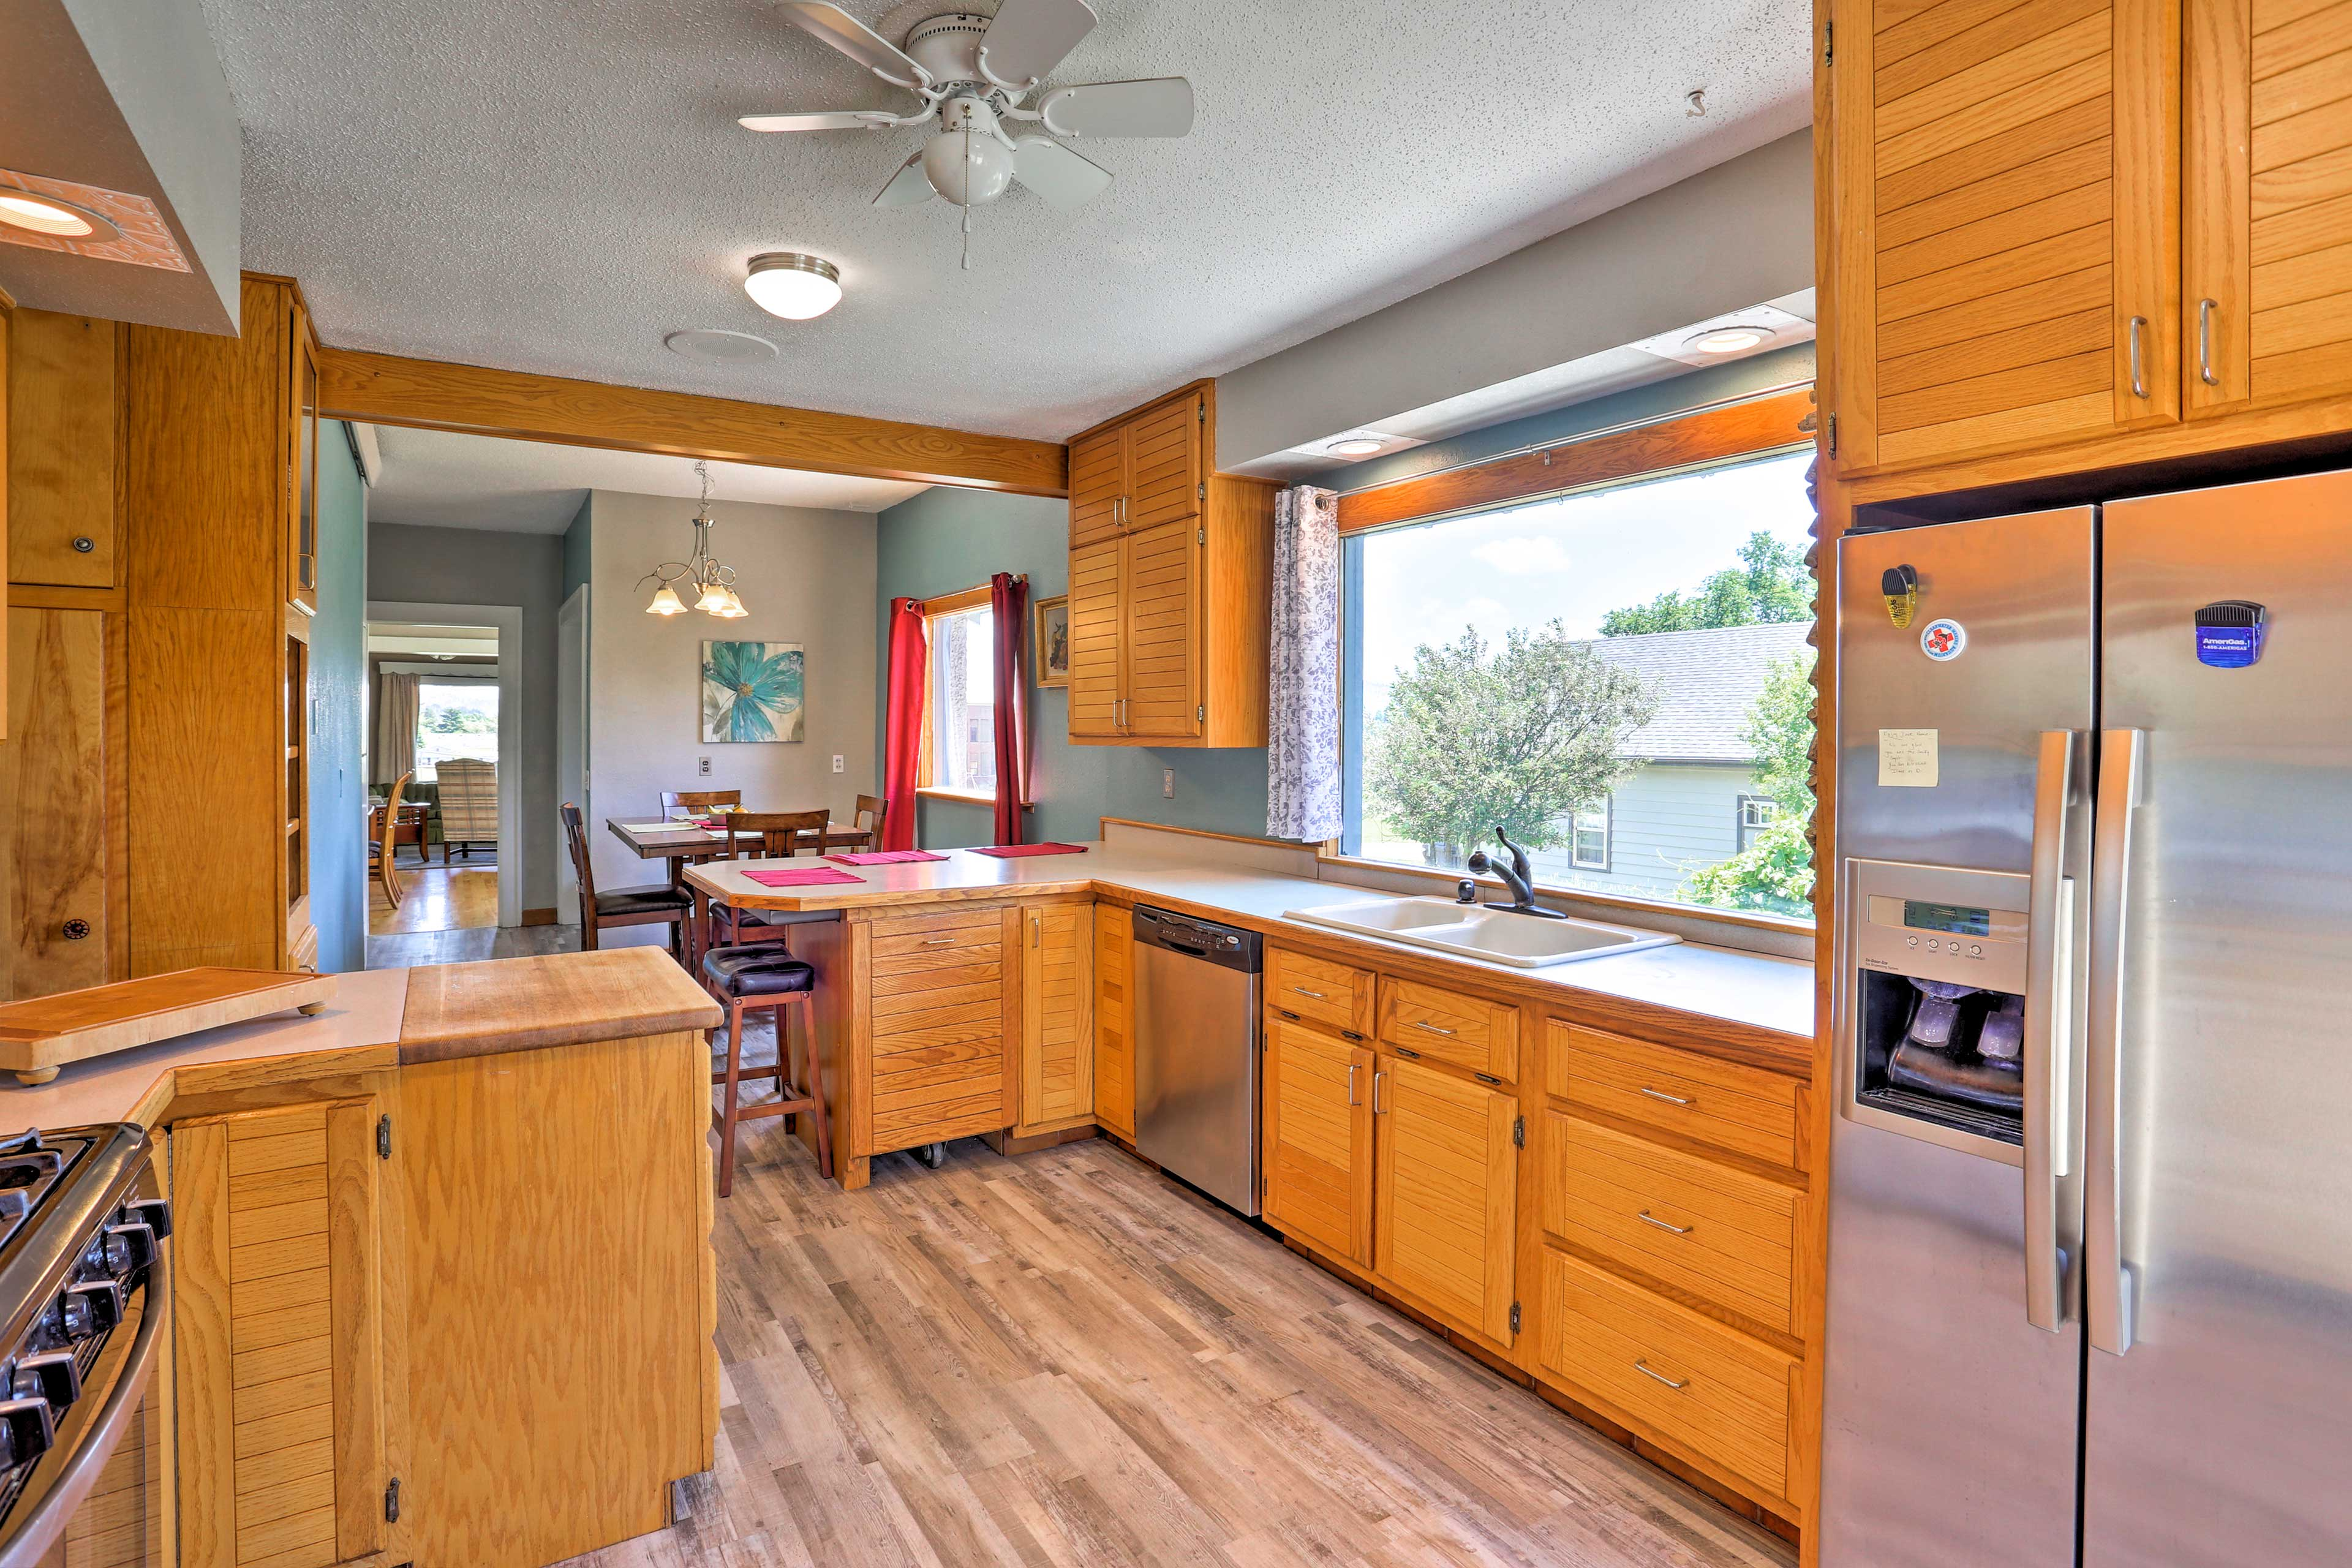 Ample counter space makes home cooking a breeze.